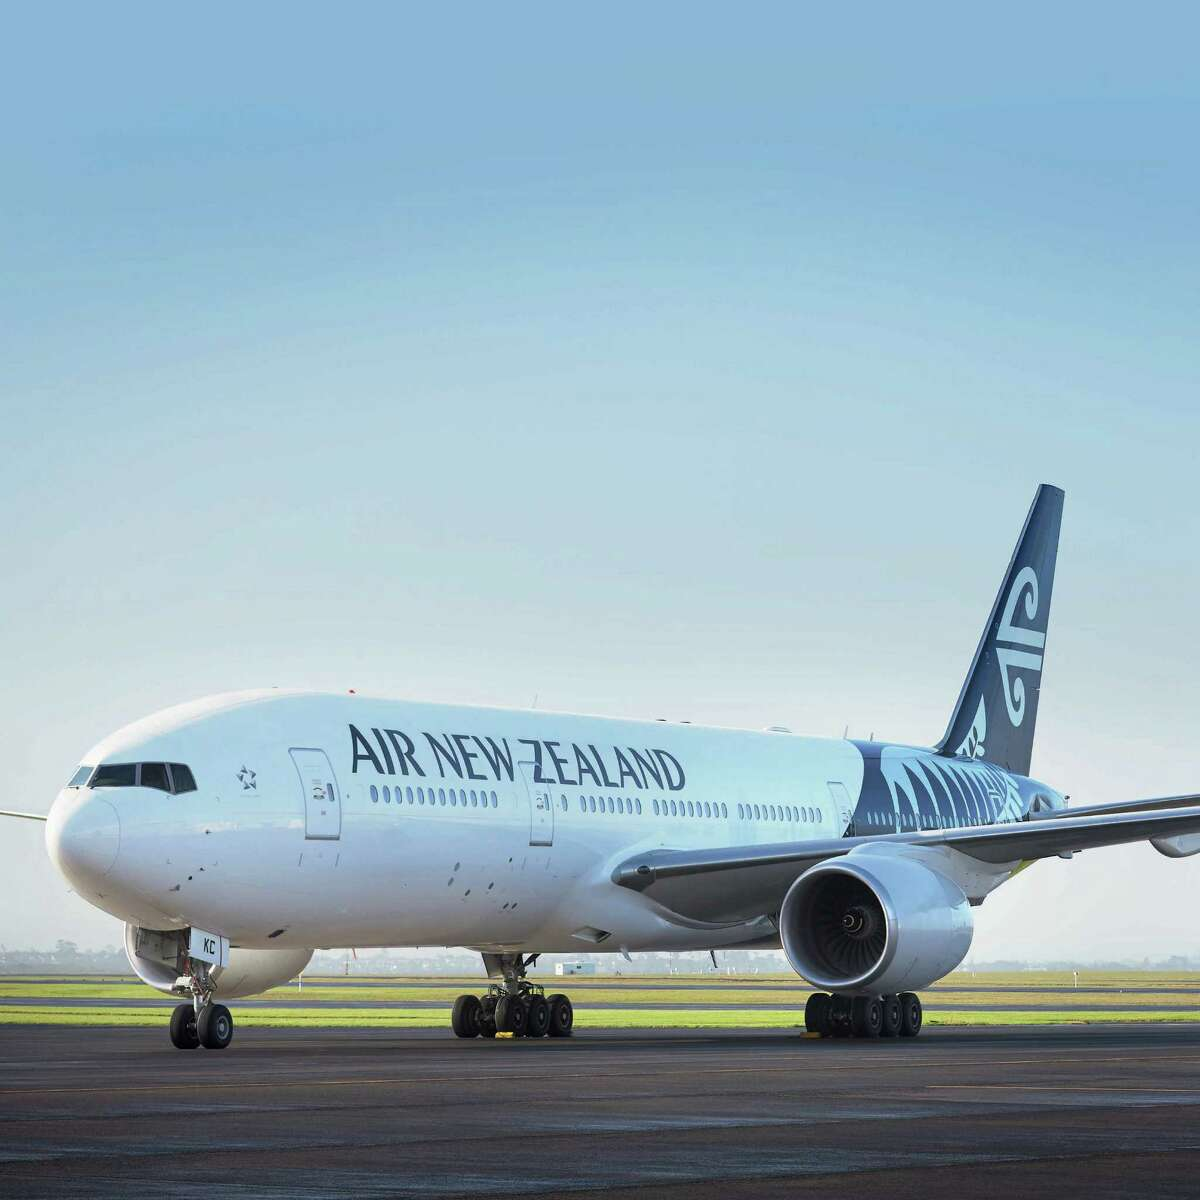 Air New Zealand Boeing 777-200. The airline will fly a nonstop flight between Houston and Auckland beginning in December 2015.